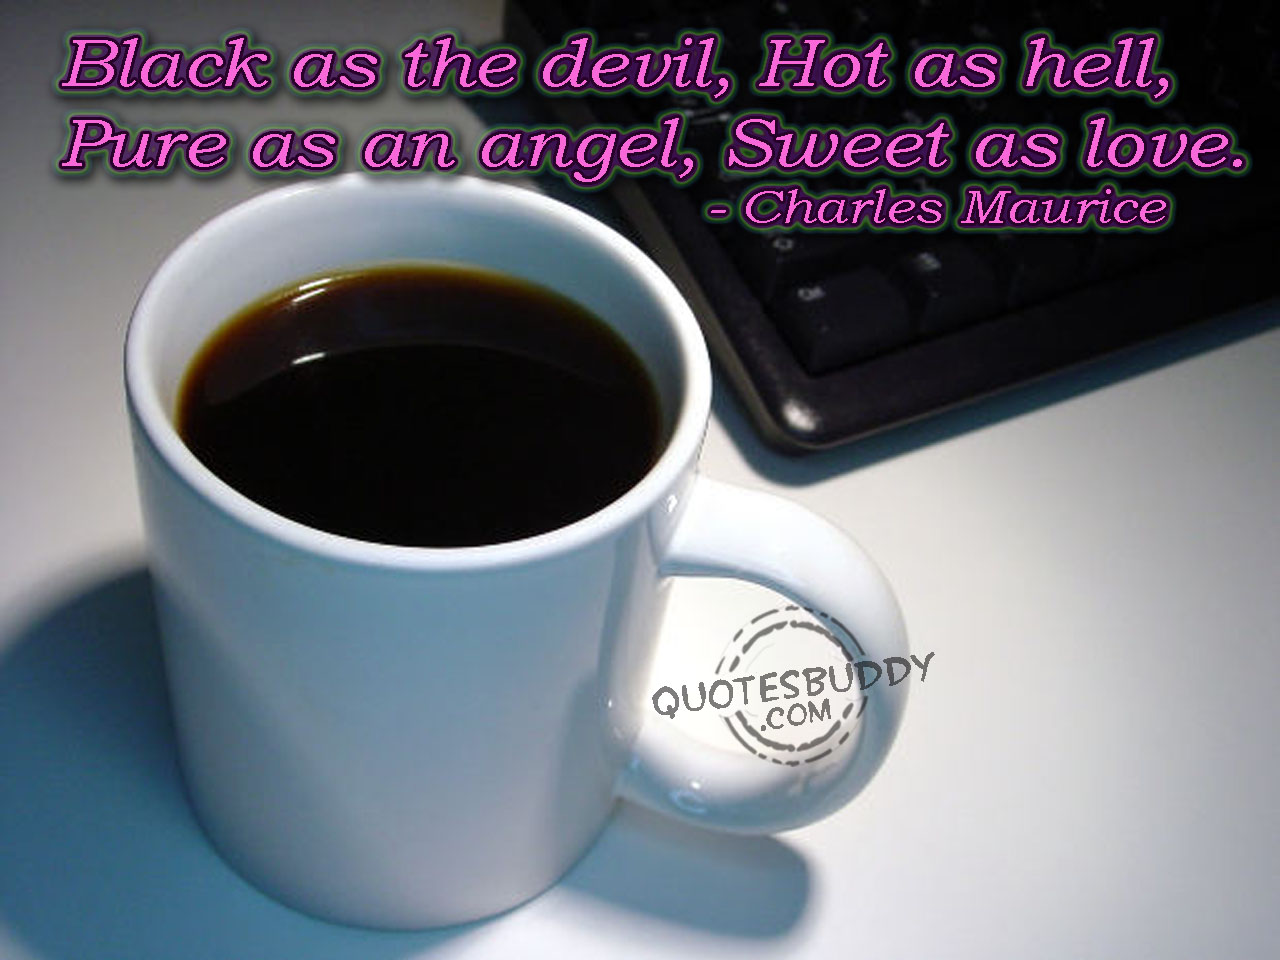 Black As The Devil, Hot As Hell, Pure As An Angel,  Sweet As Love. - Charles Maurice